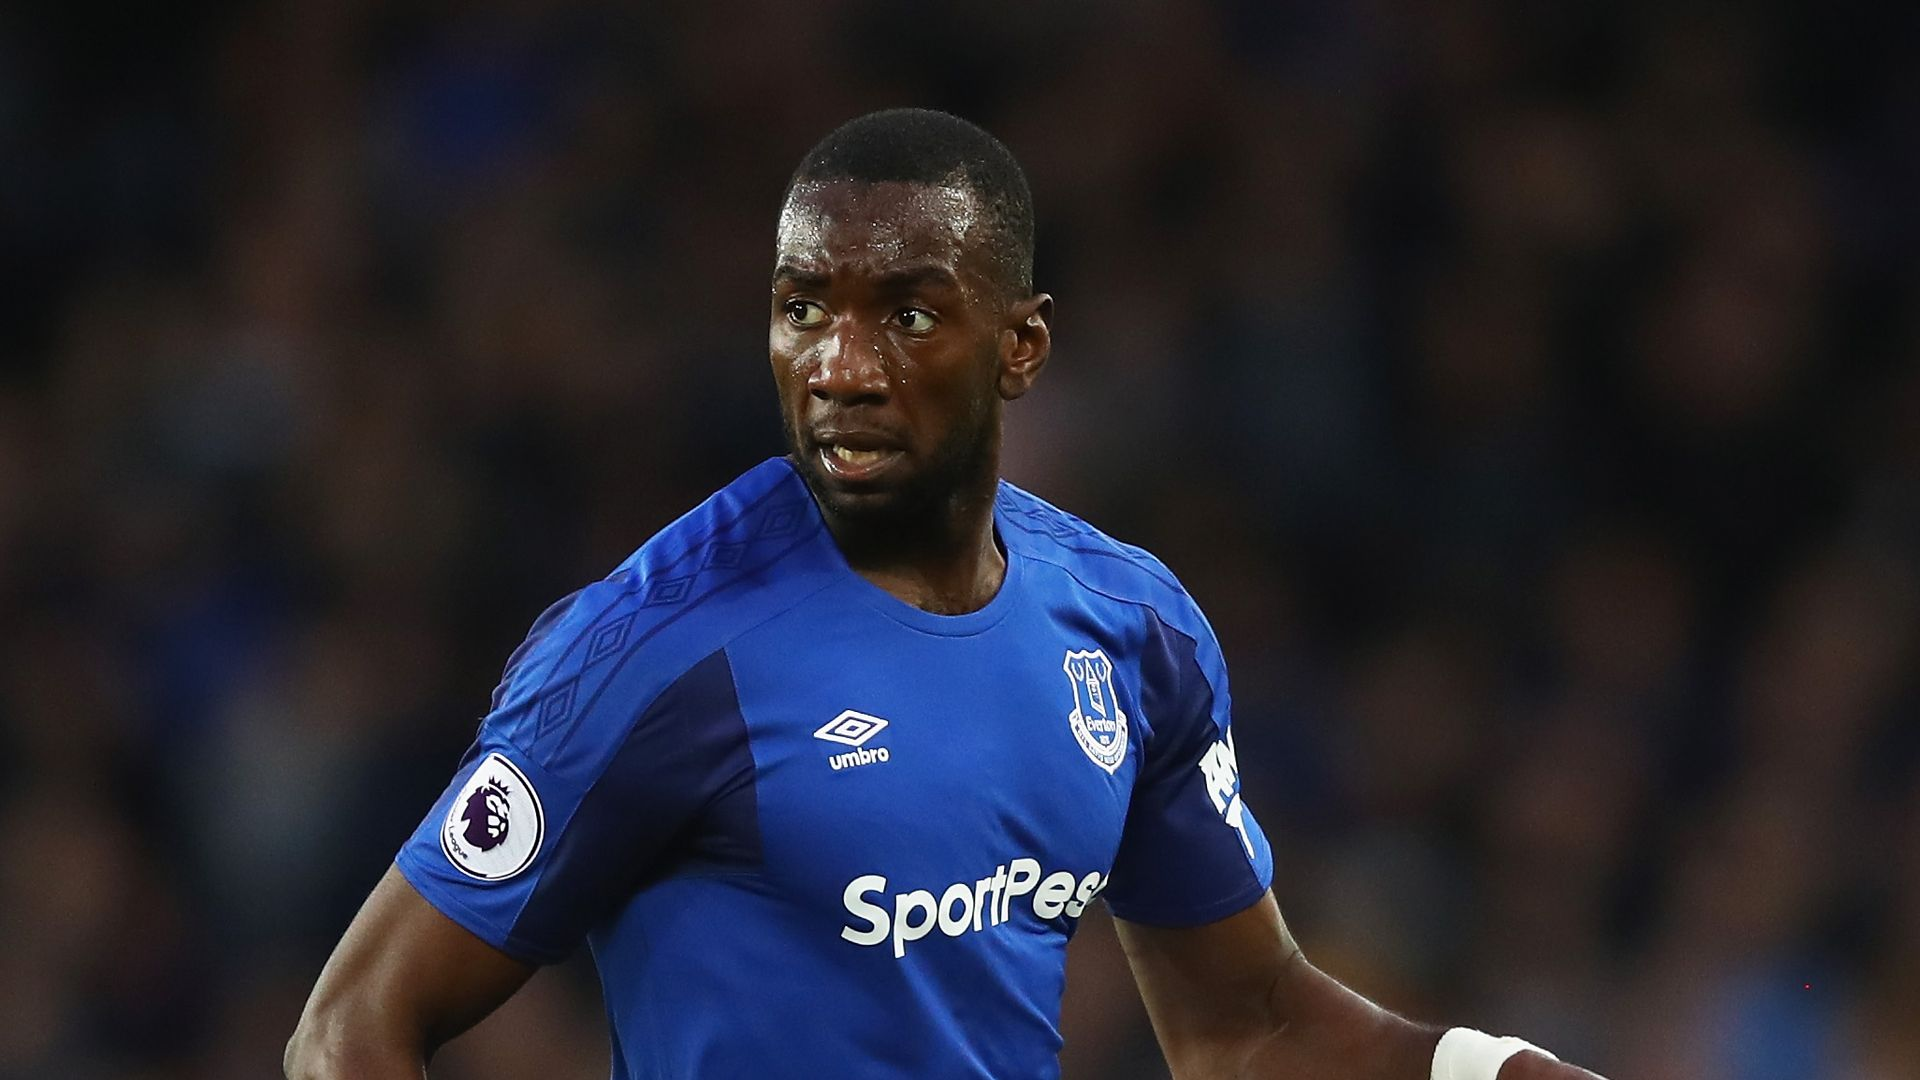 Boro in talks to sign Bolasie